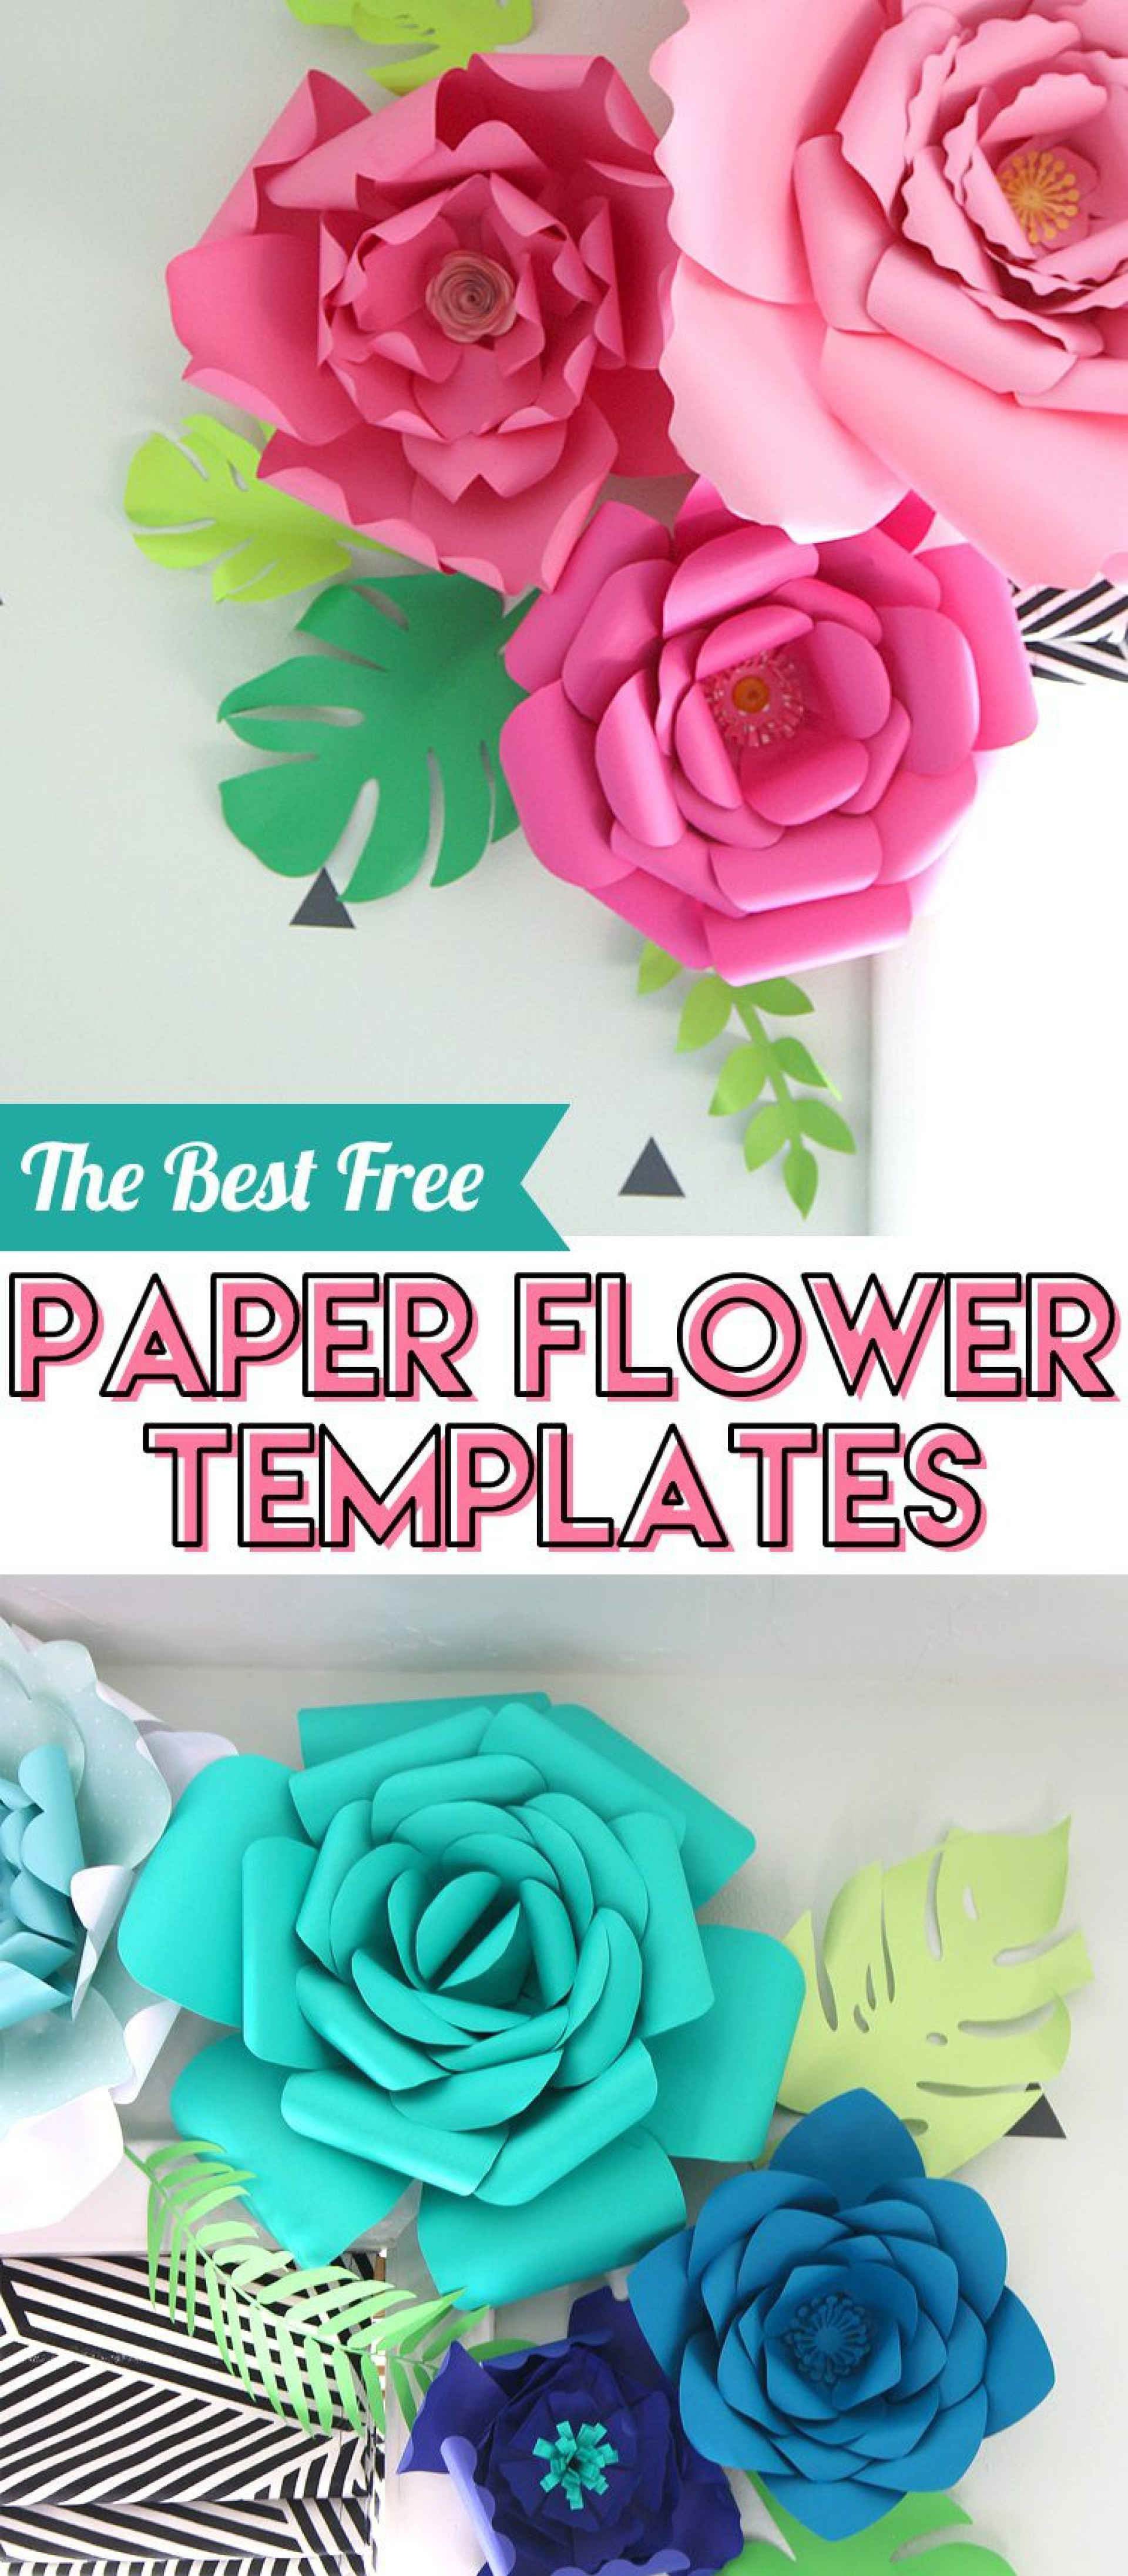 008 Best Large Rose Paper Flower Template Free Picture 1920